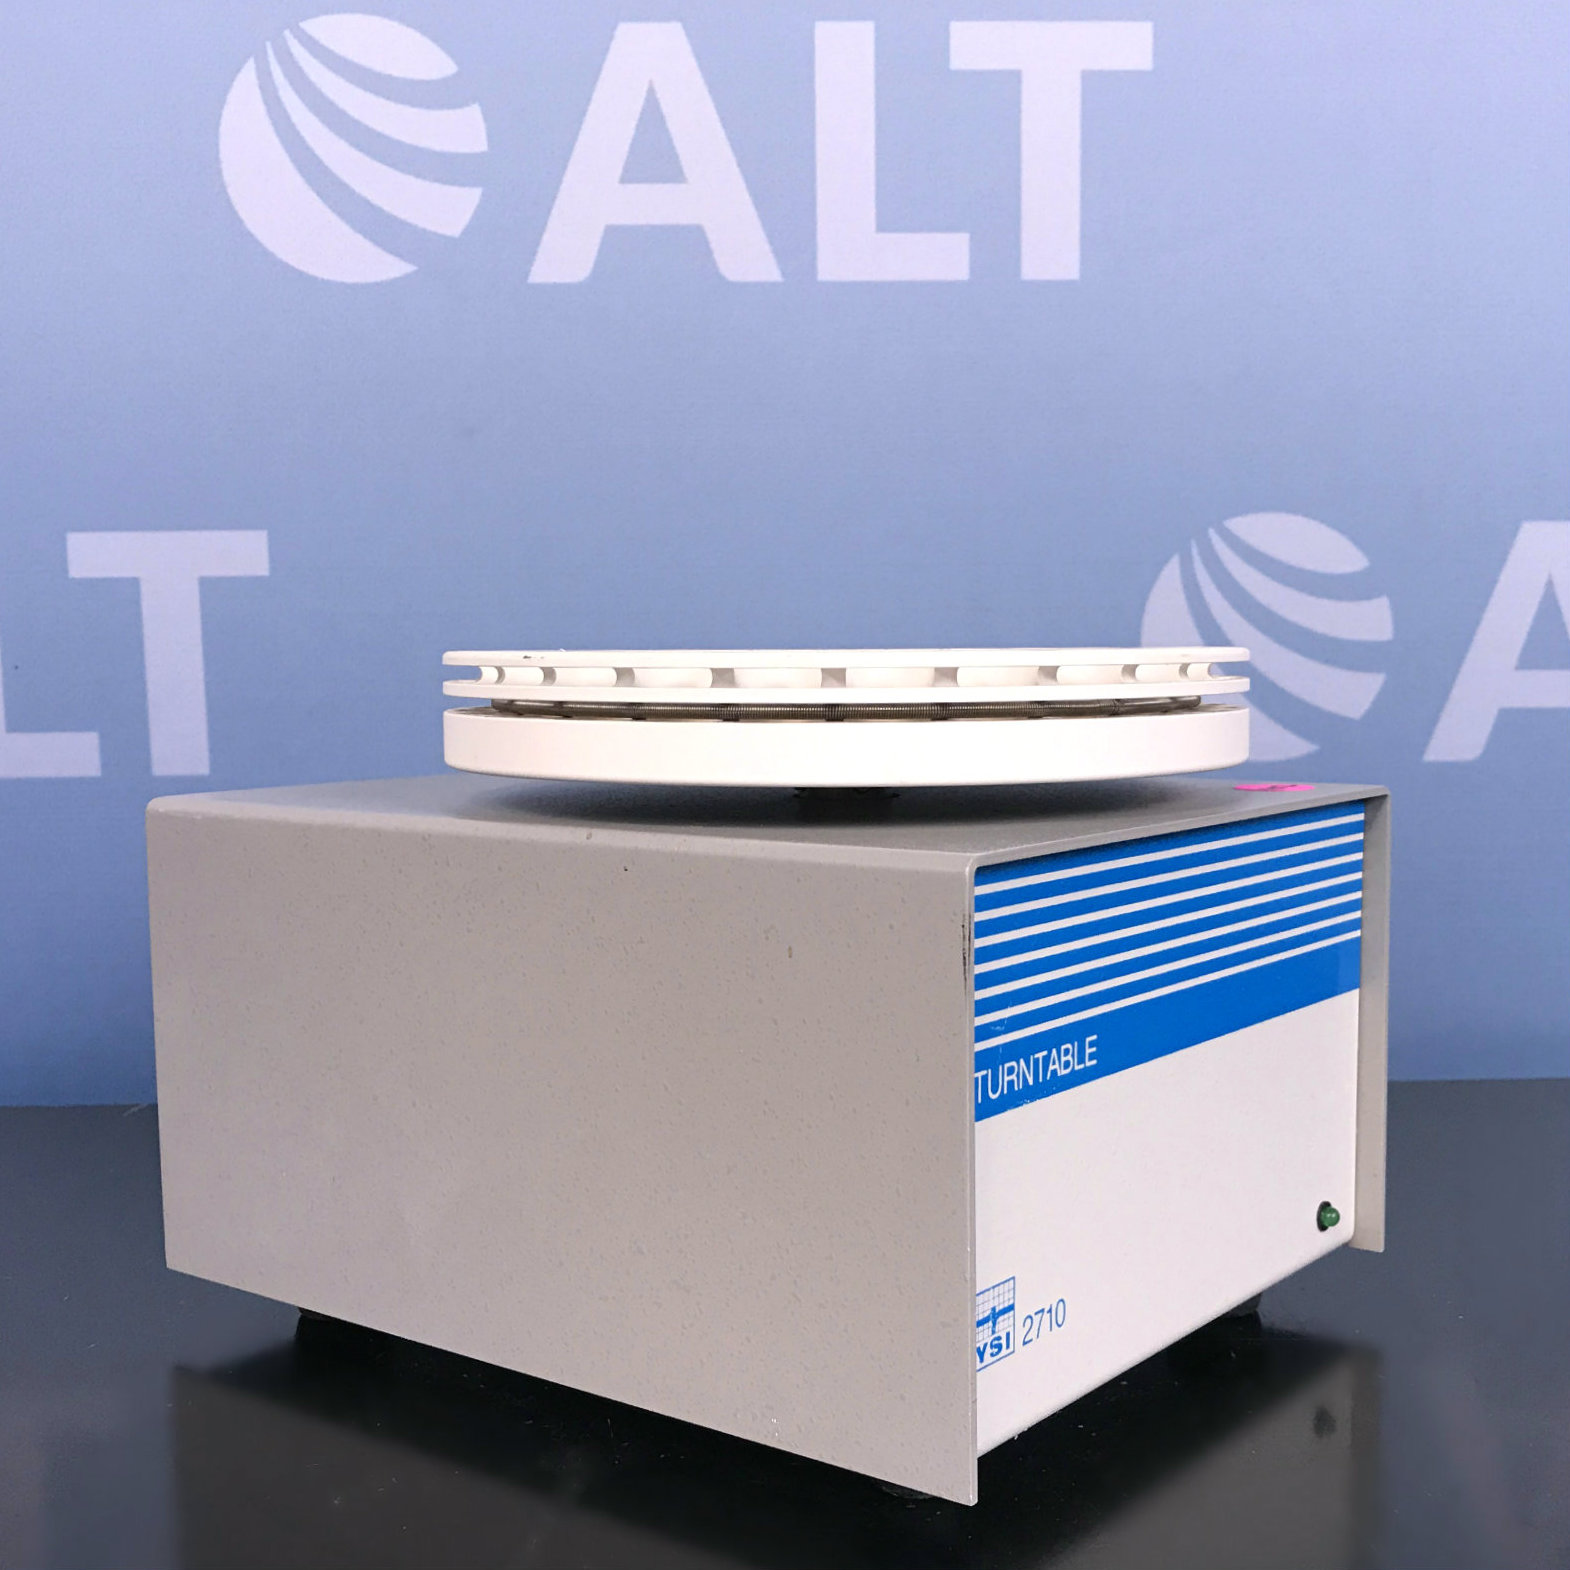 YSI 2710 Turntable for 2700 Select Biochemistry Analyzer Image